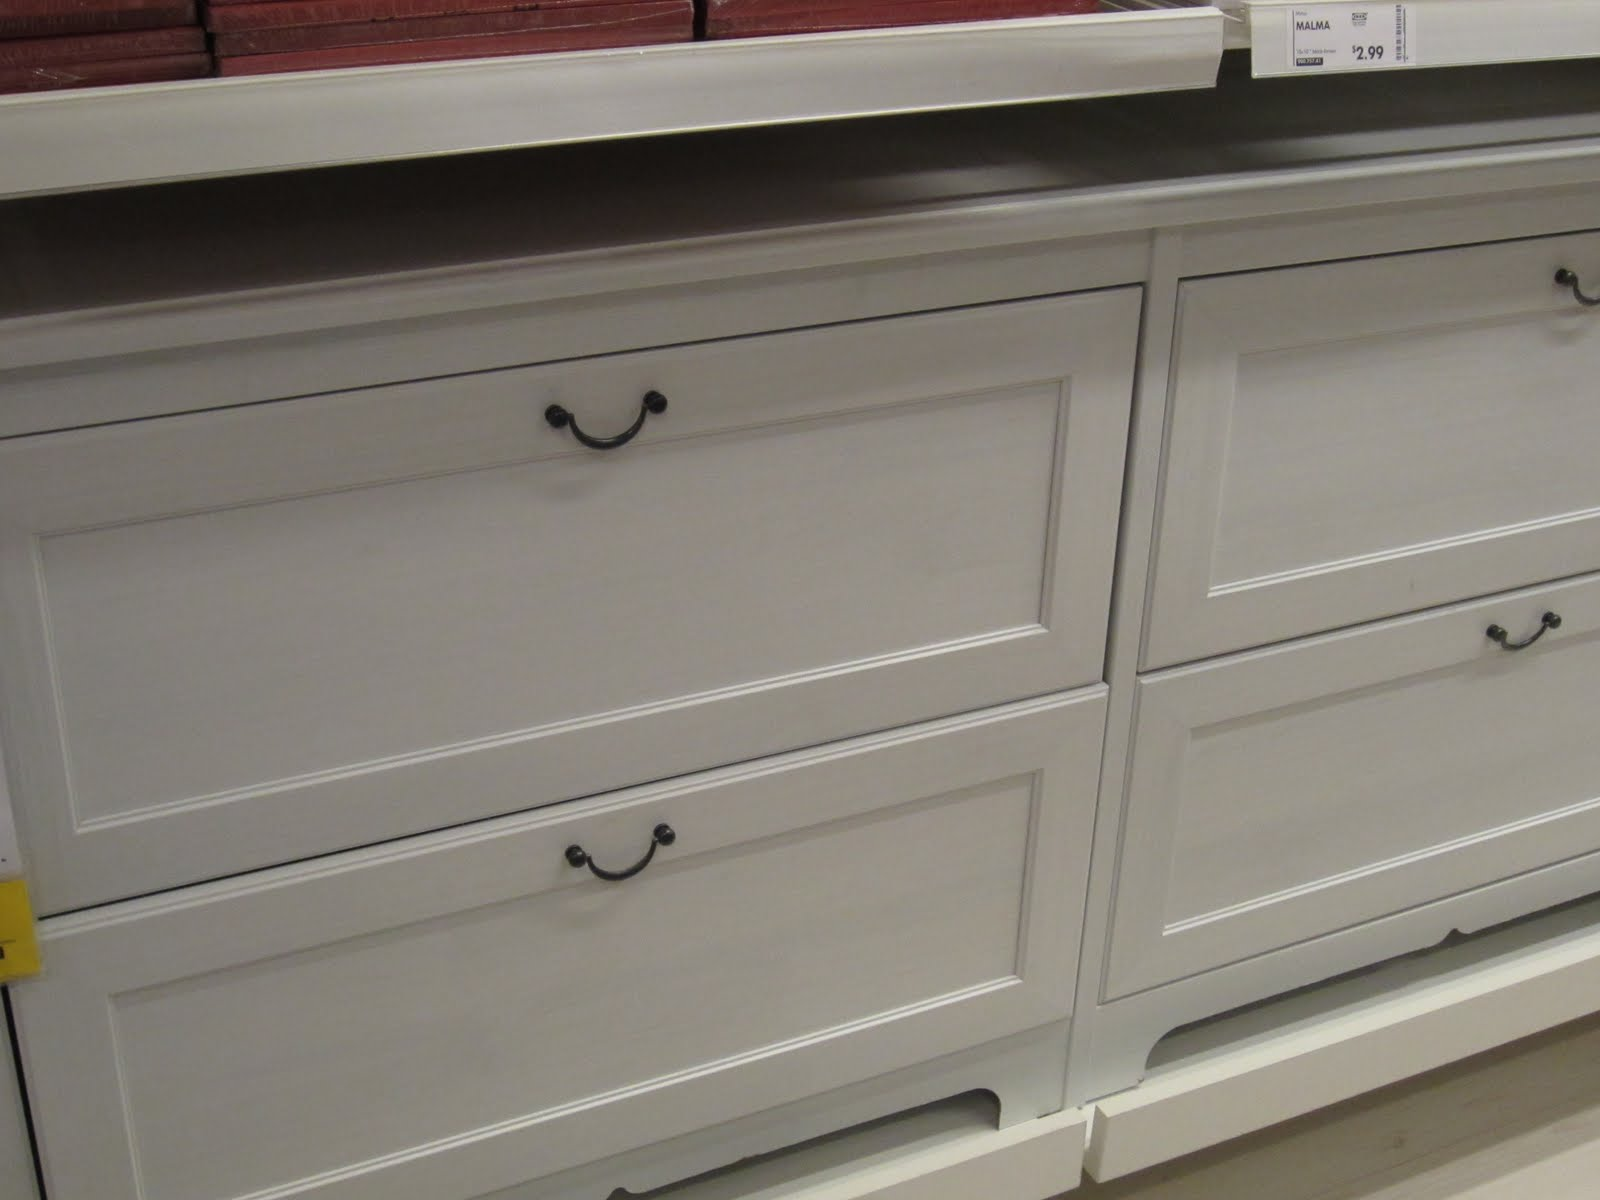 Wickelkommode Mit Badewanne Ikea ~ Aspelund+Dresser+White Home » Birkeland Chest Of Drawers